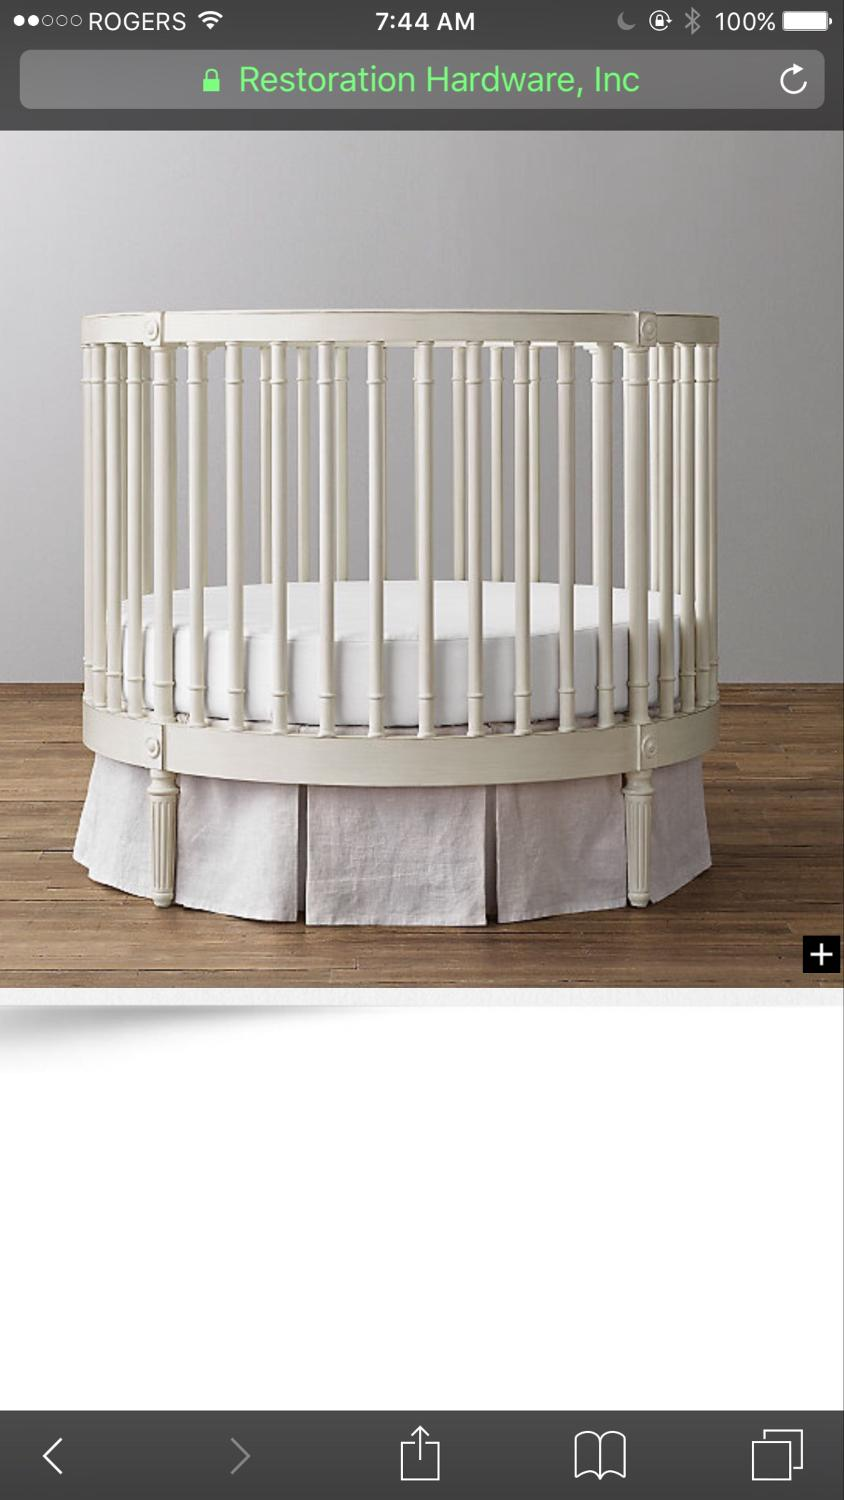 Ellery round crib for sale - Find More Restoration Hardware Ellery Round Crib For Sale At Up To 90 Off Etobicoke On